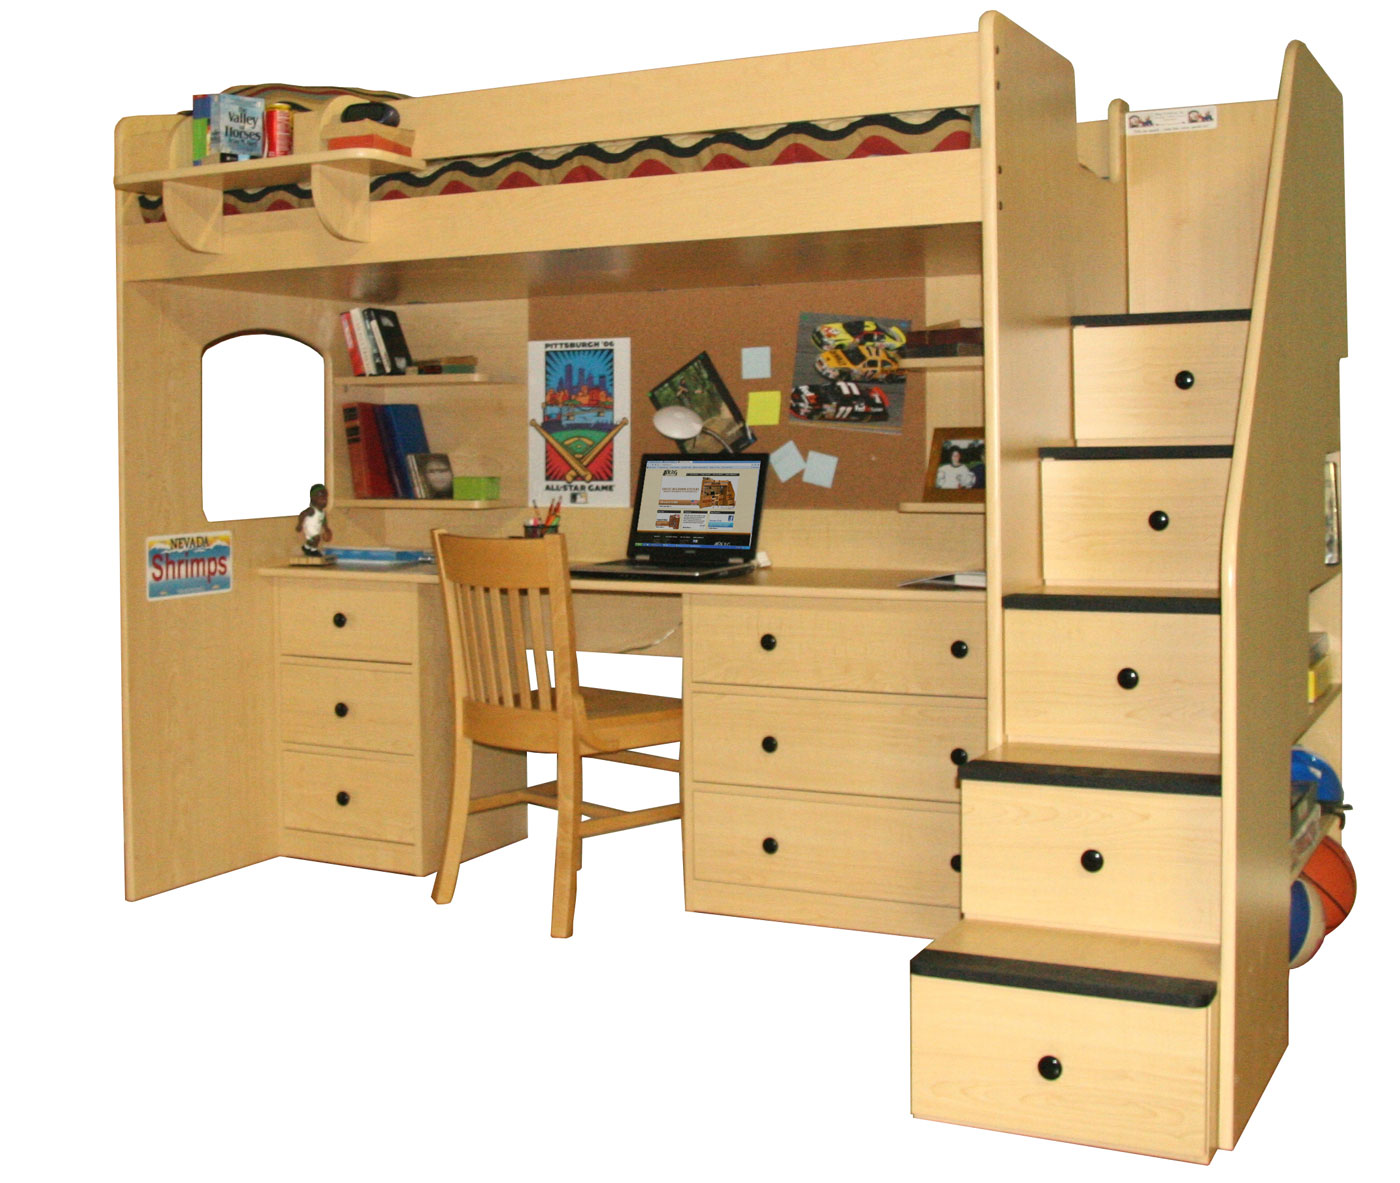 Download Bunk Beds With Desk Plans PDF cabinet making jobs sydney